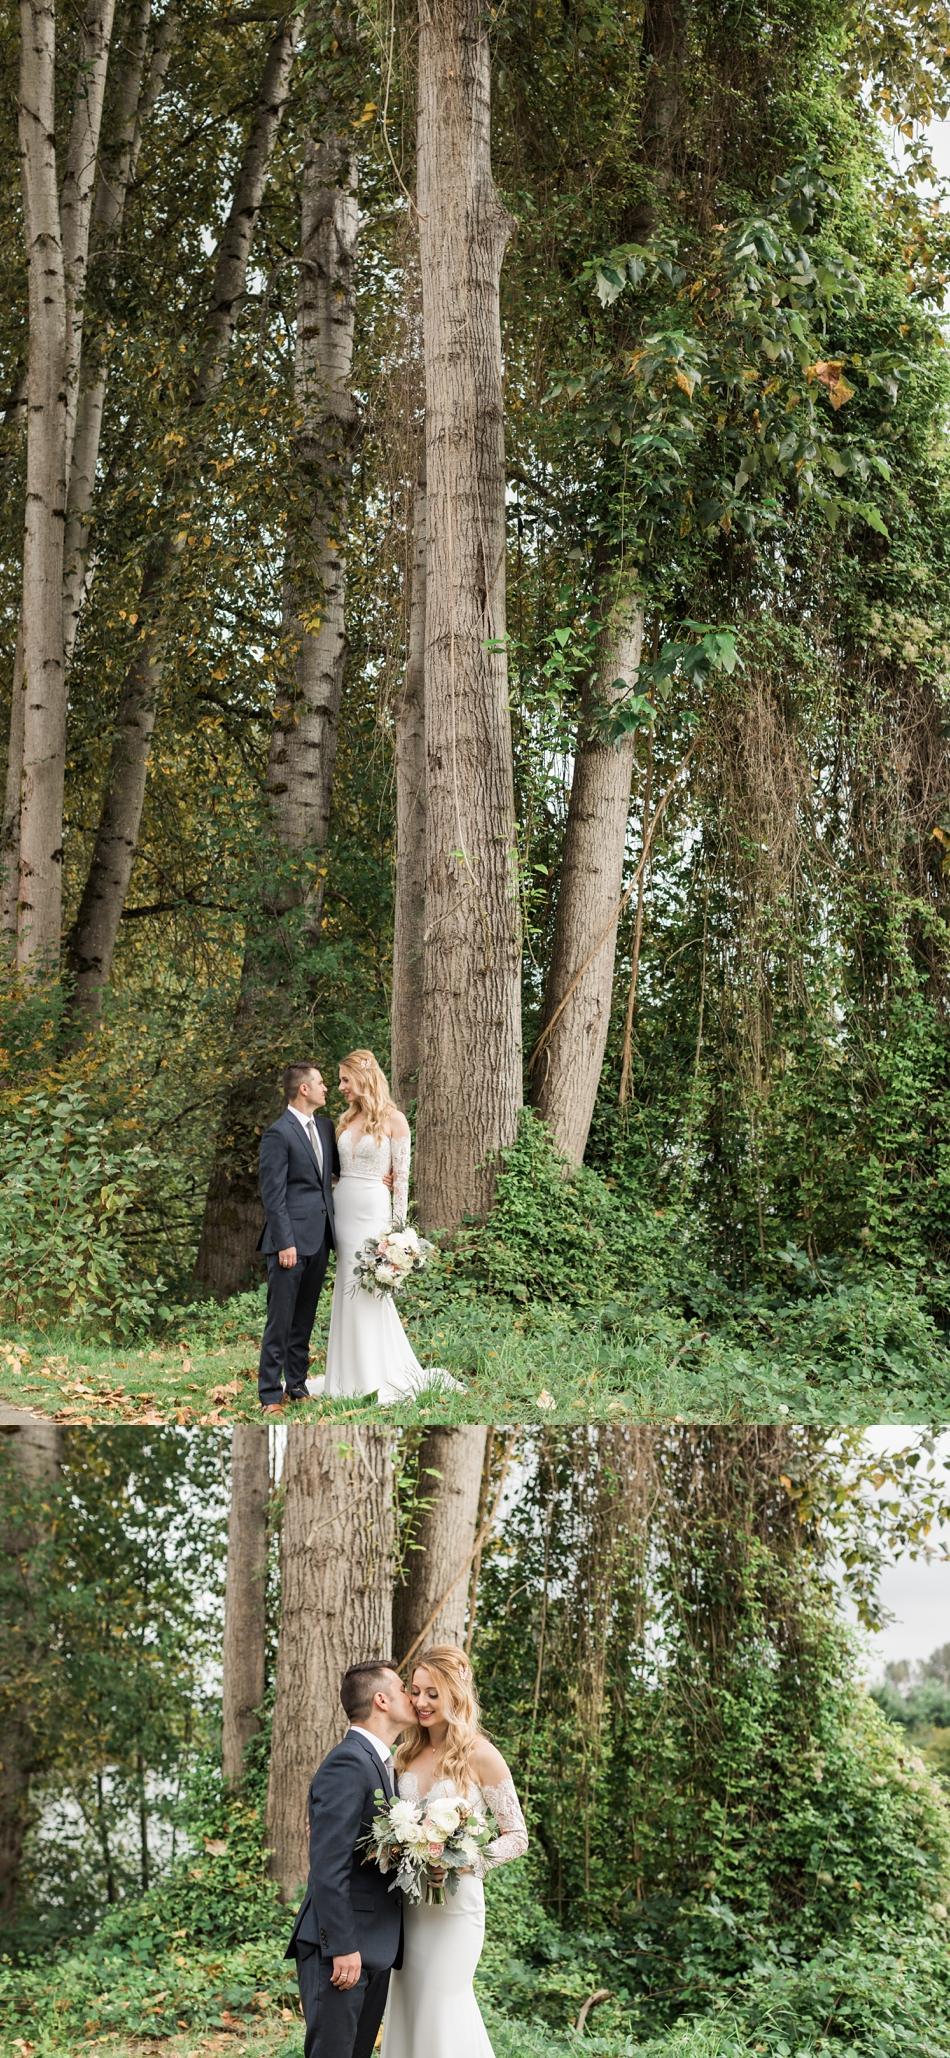 Photo of bride and groom standing under tall trees before their intimate wedding at Belle Chapel in Snohomish, a wedding venue near Seattle. | Joanna Monger Photography | Snohomish & Seattle Photographer